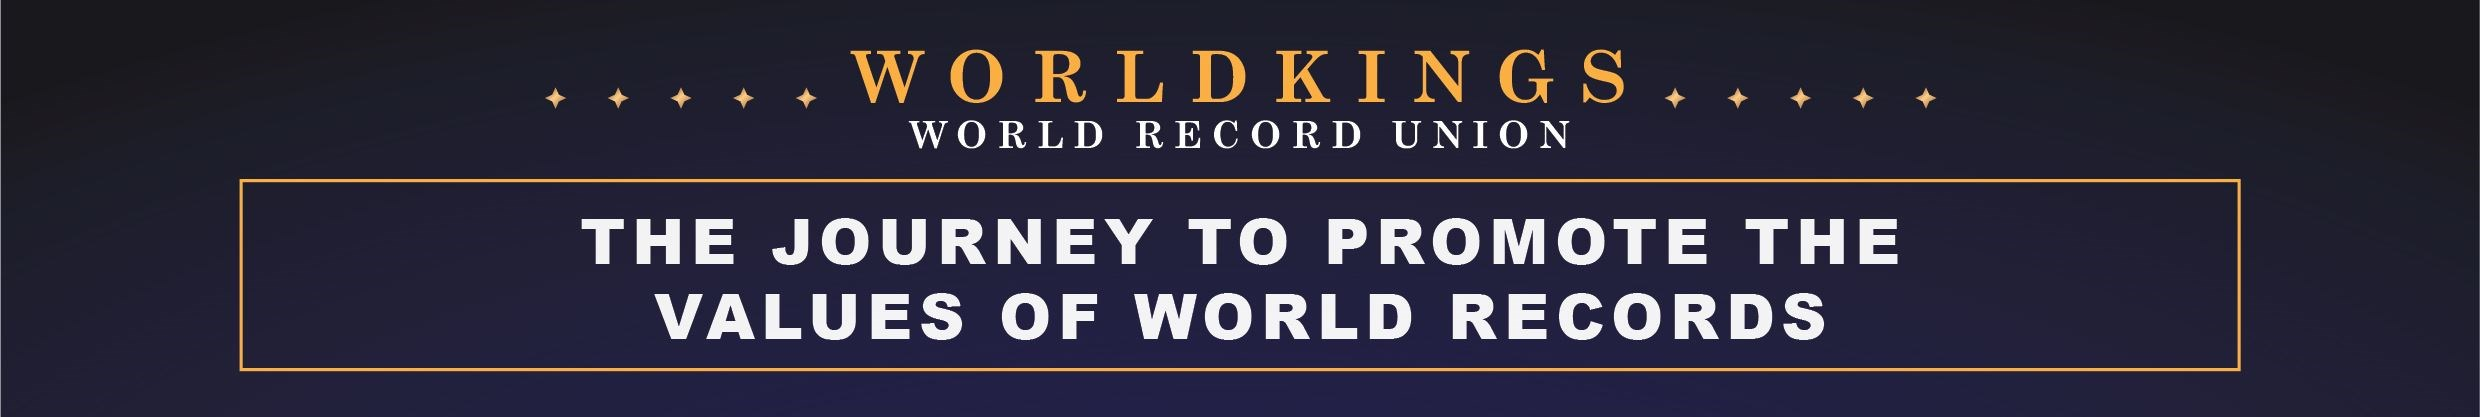 world records journey